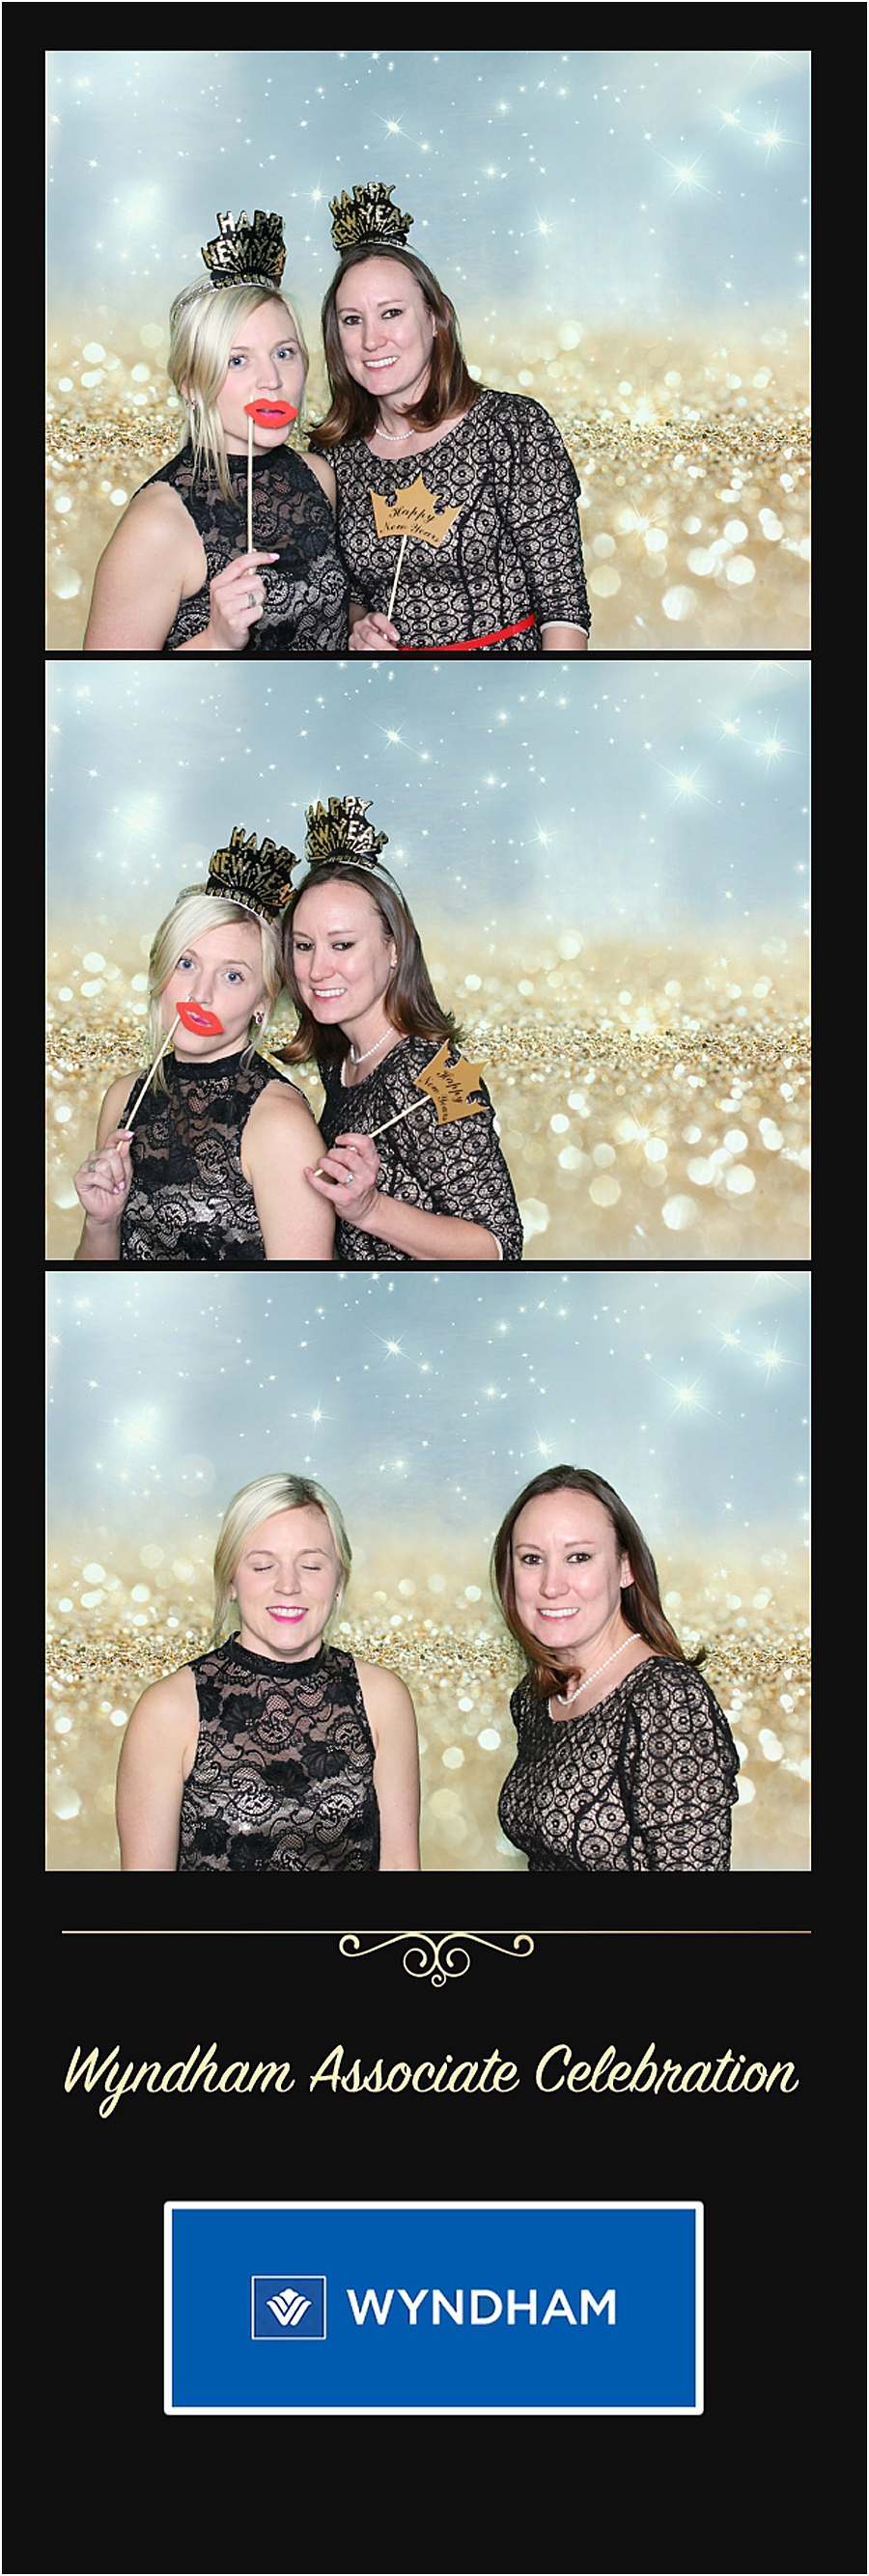 Knoxville Photo Booth_0897.jpg